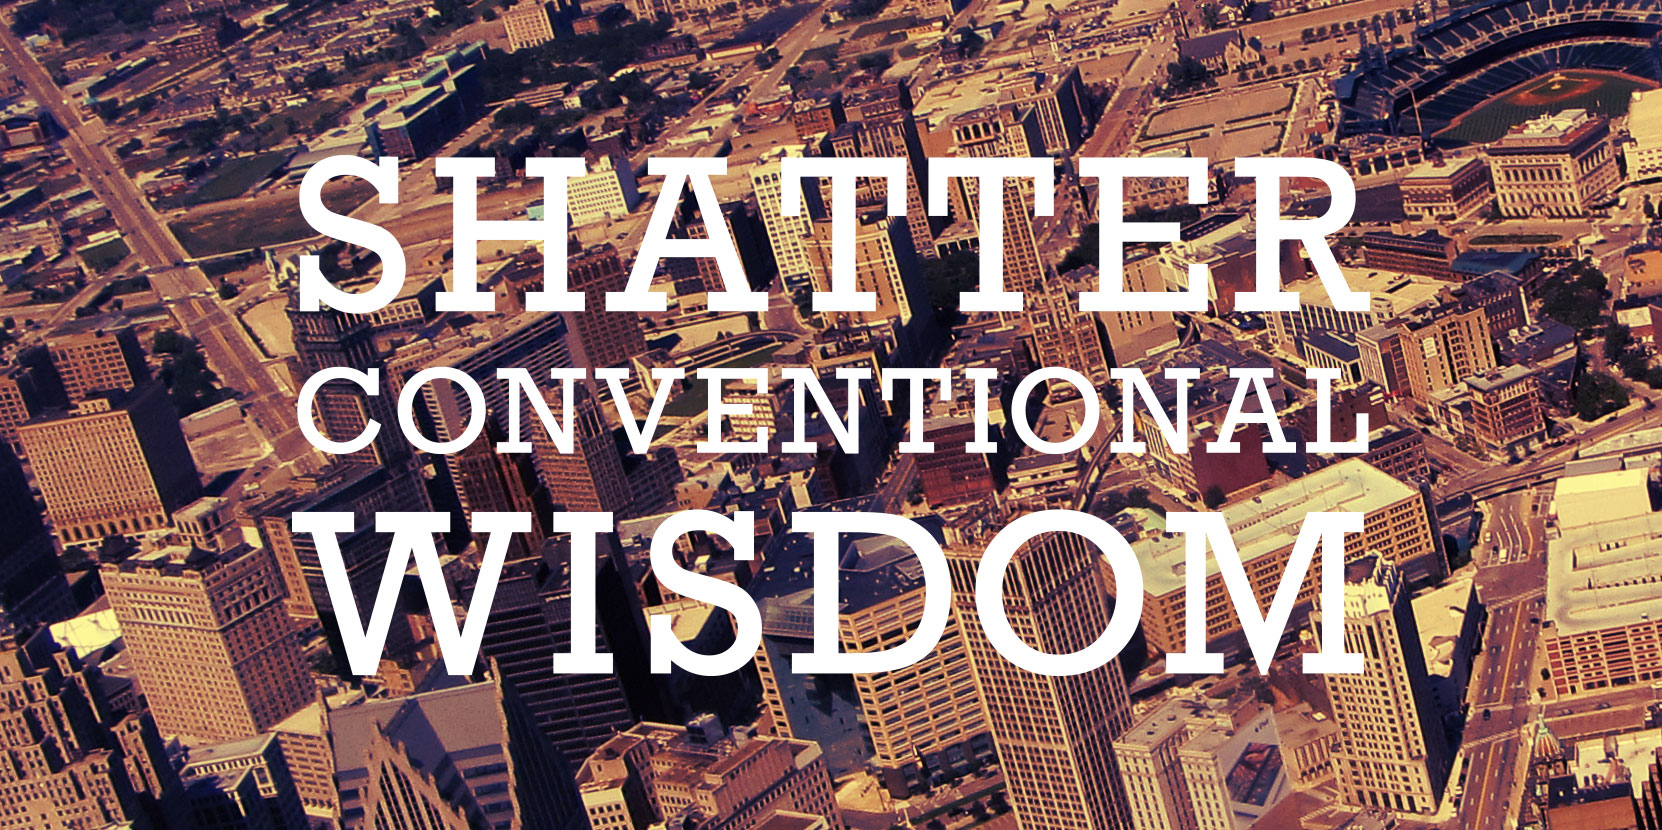 Shatter conventional widsom.